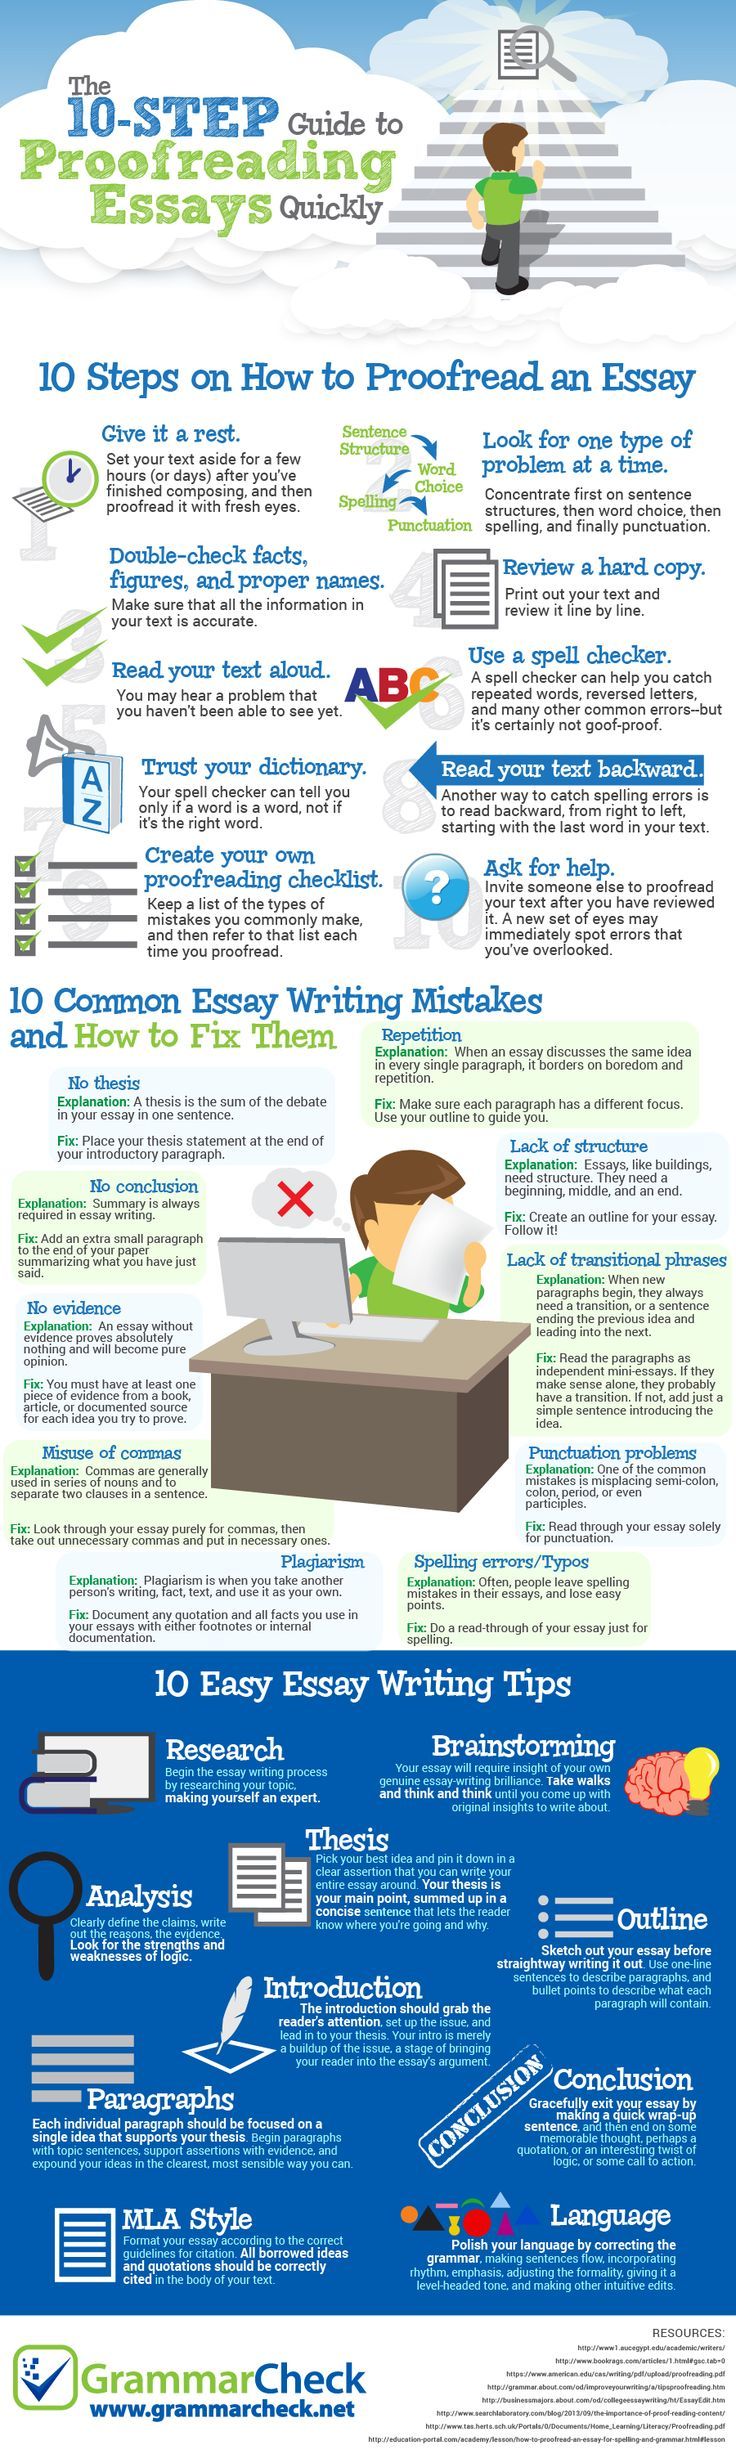 best essay writing help ideas creative writing the 10 step guide to proofreading essays quickly infographic